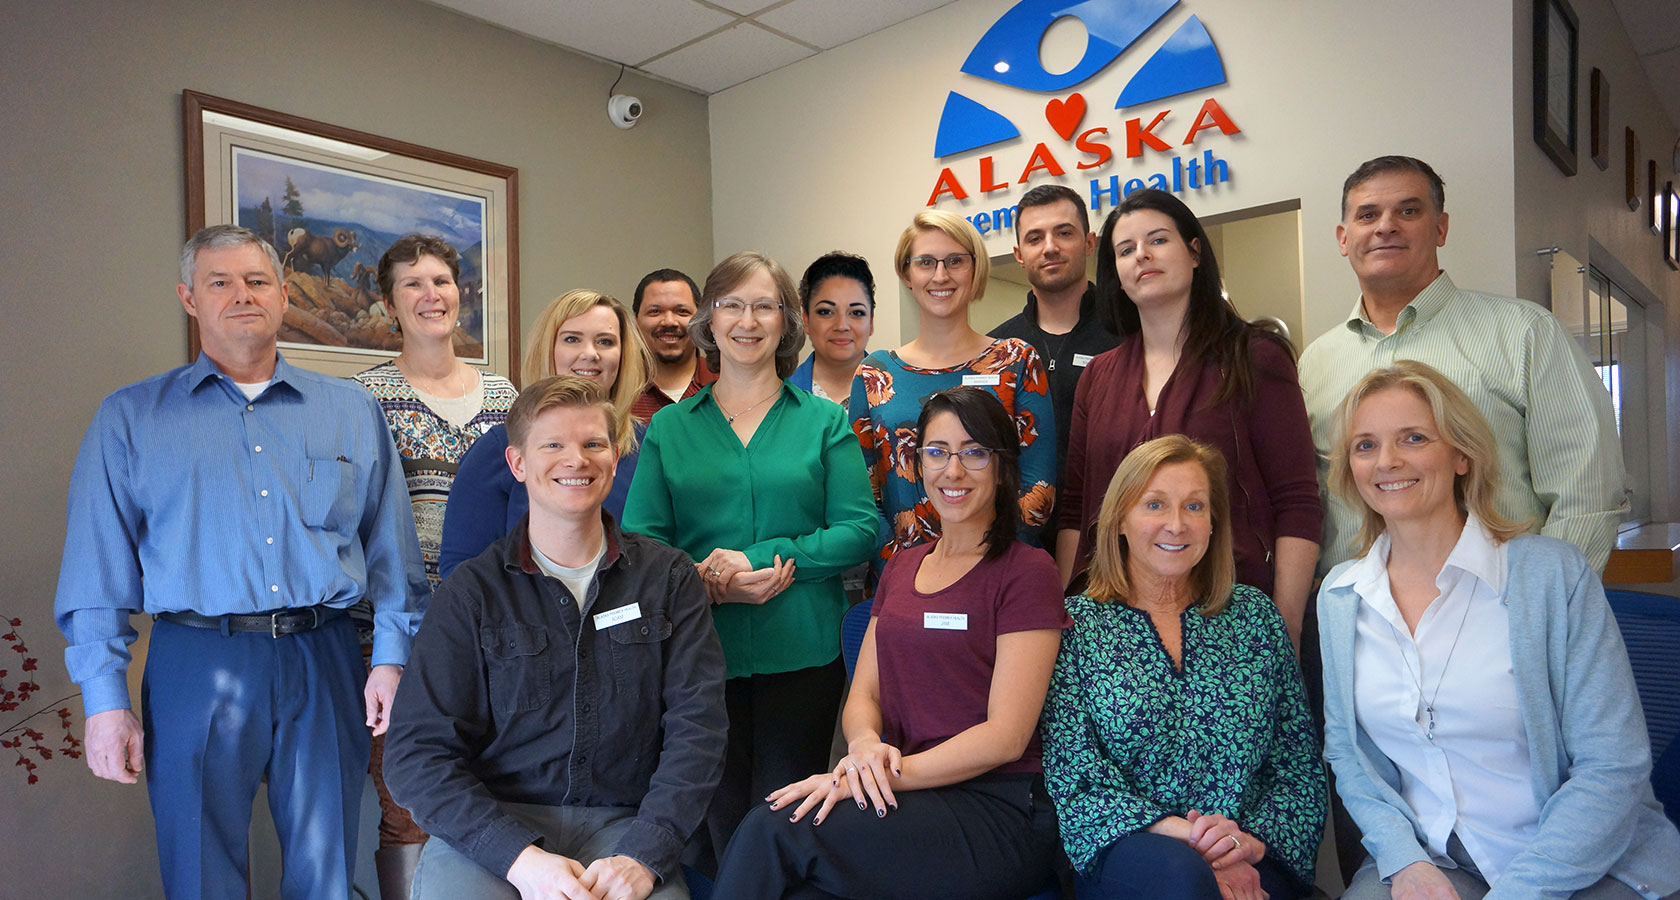 Alaska Premier Health staff photo